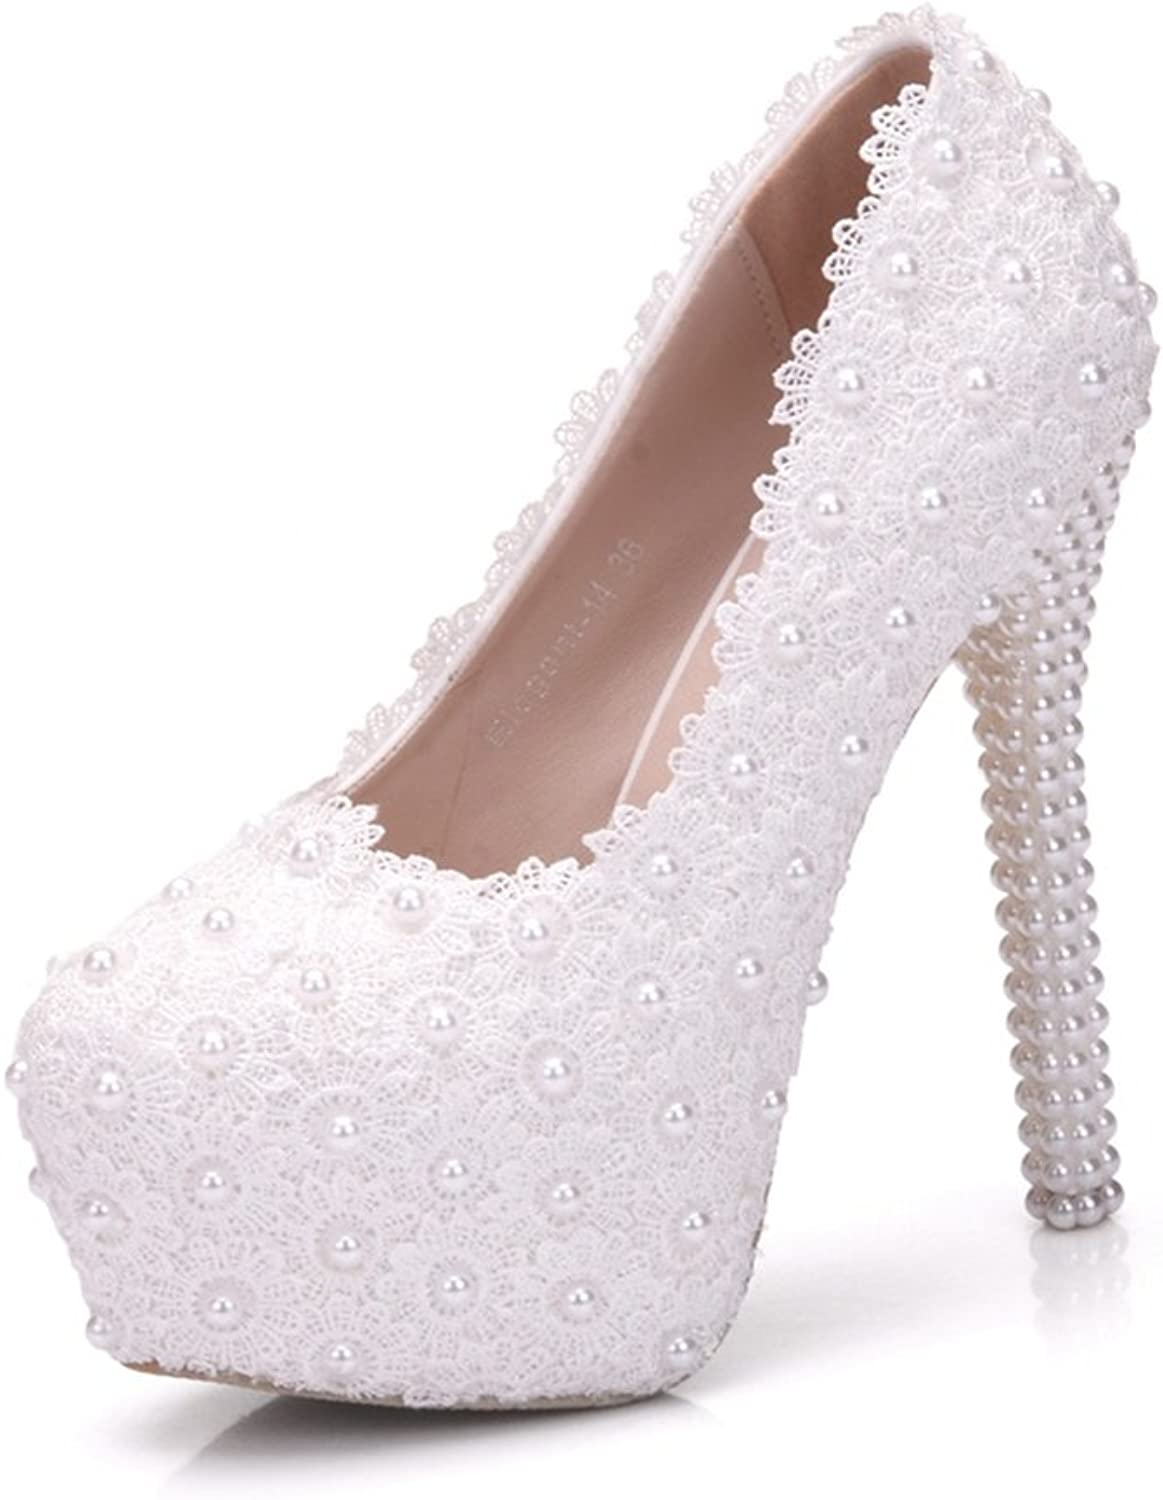 Eleganceoo Women's Handmade Lace with Flower Pearls Dress High Heel shoes